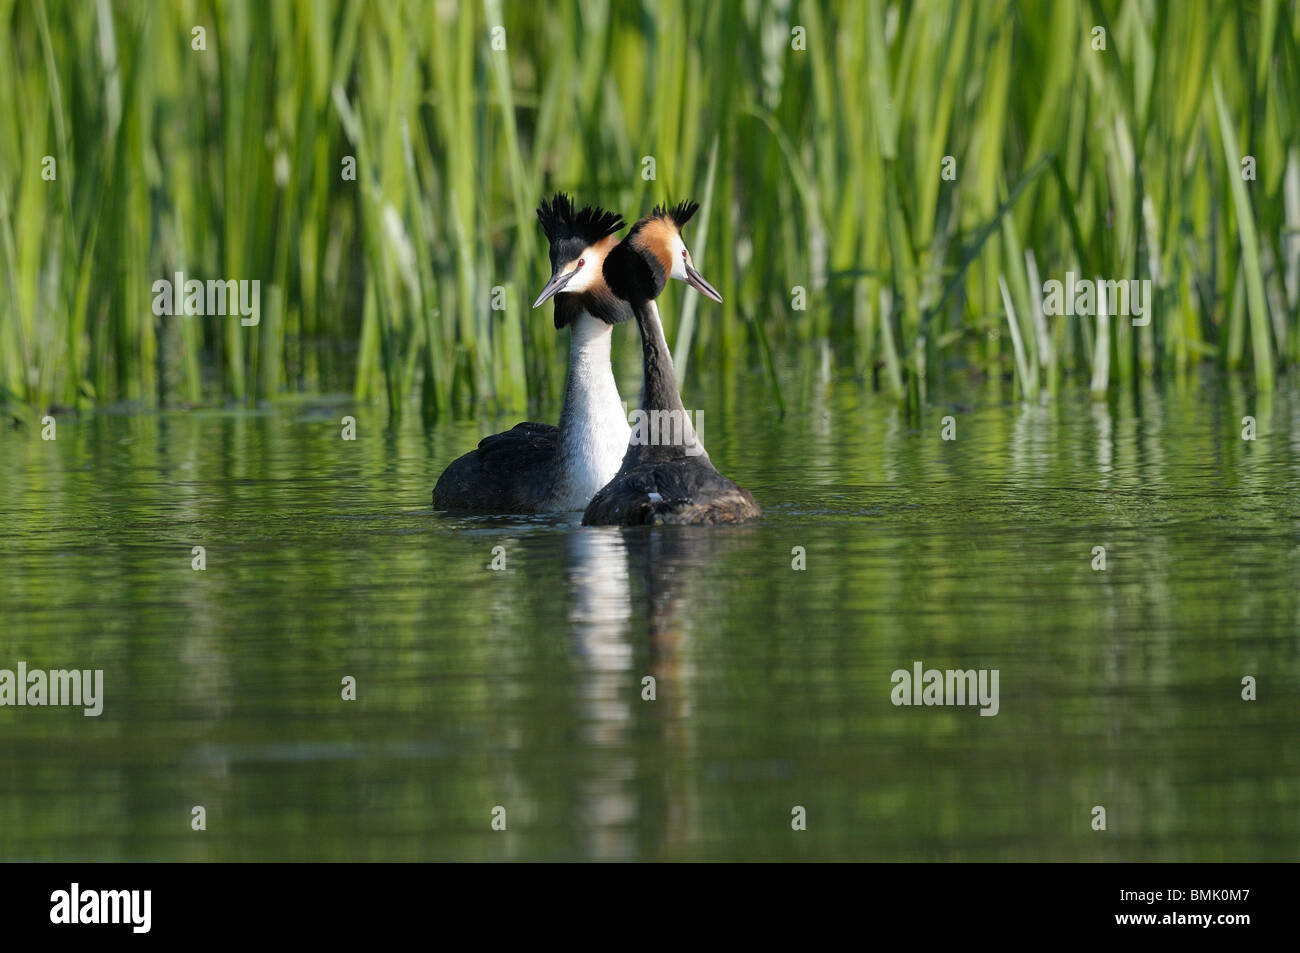 Great Crested Grebe breeding display - Stock Image